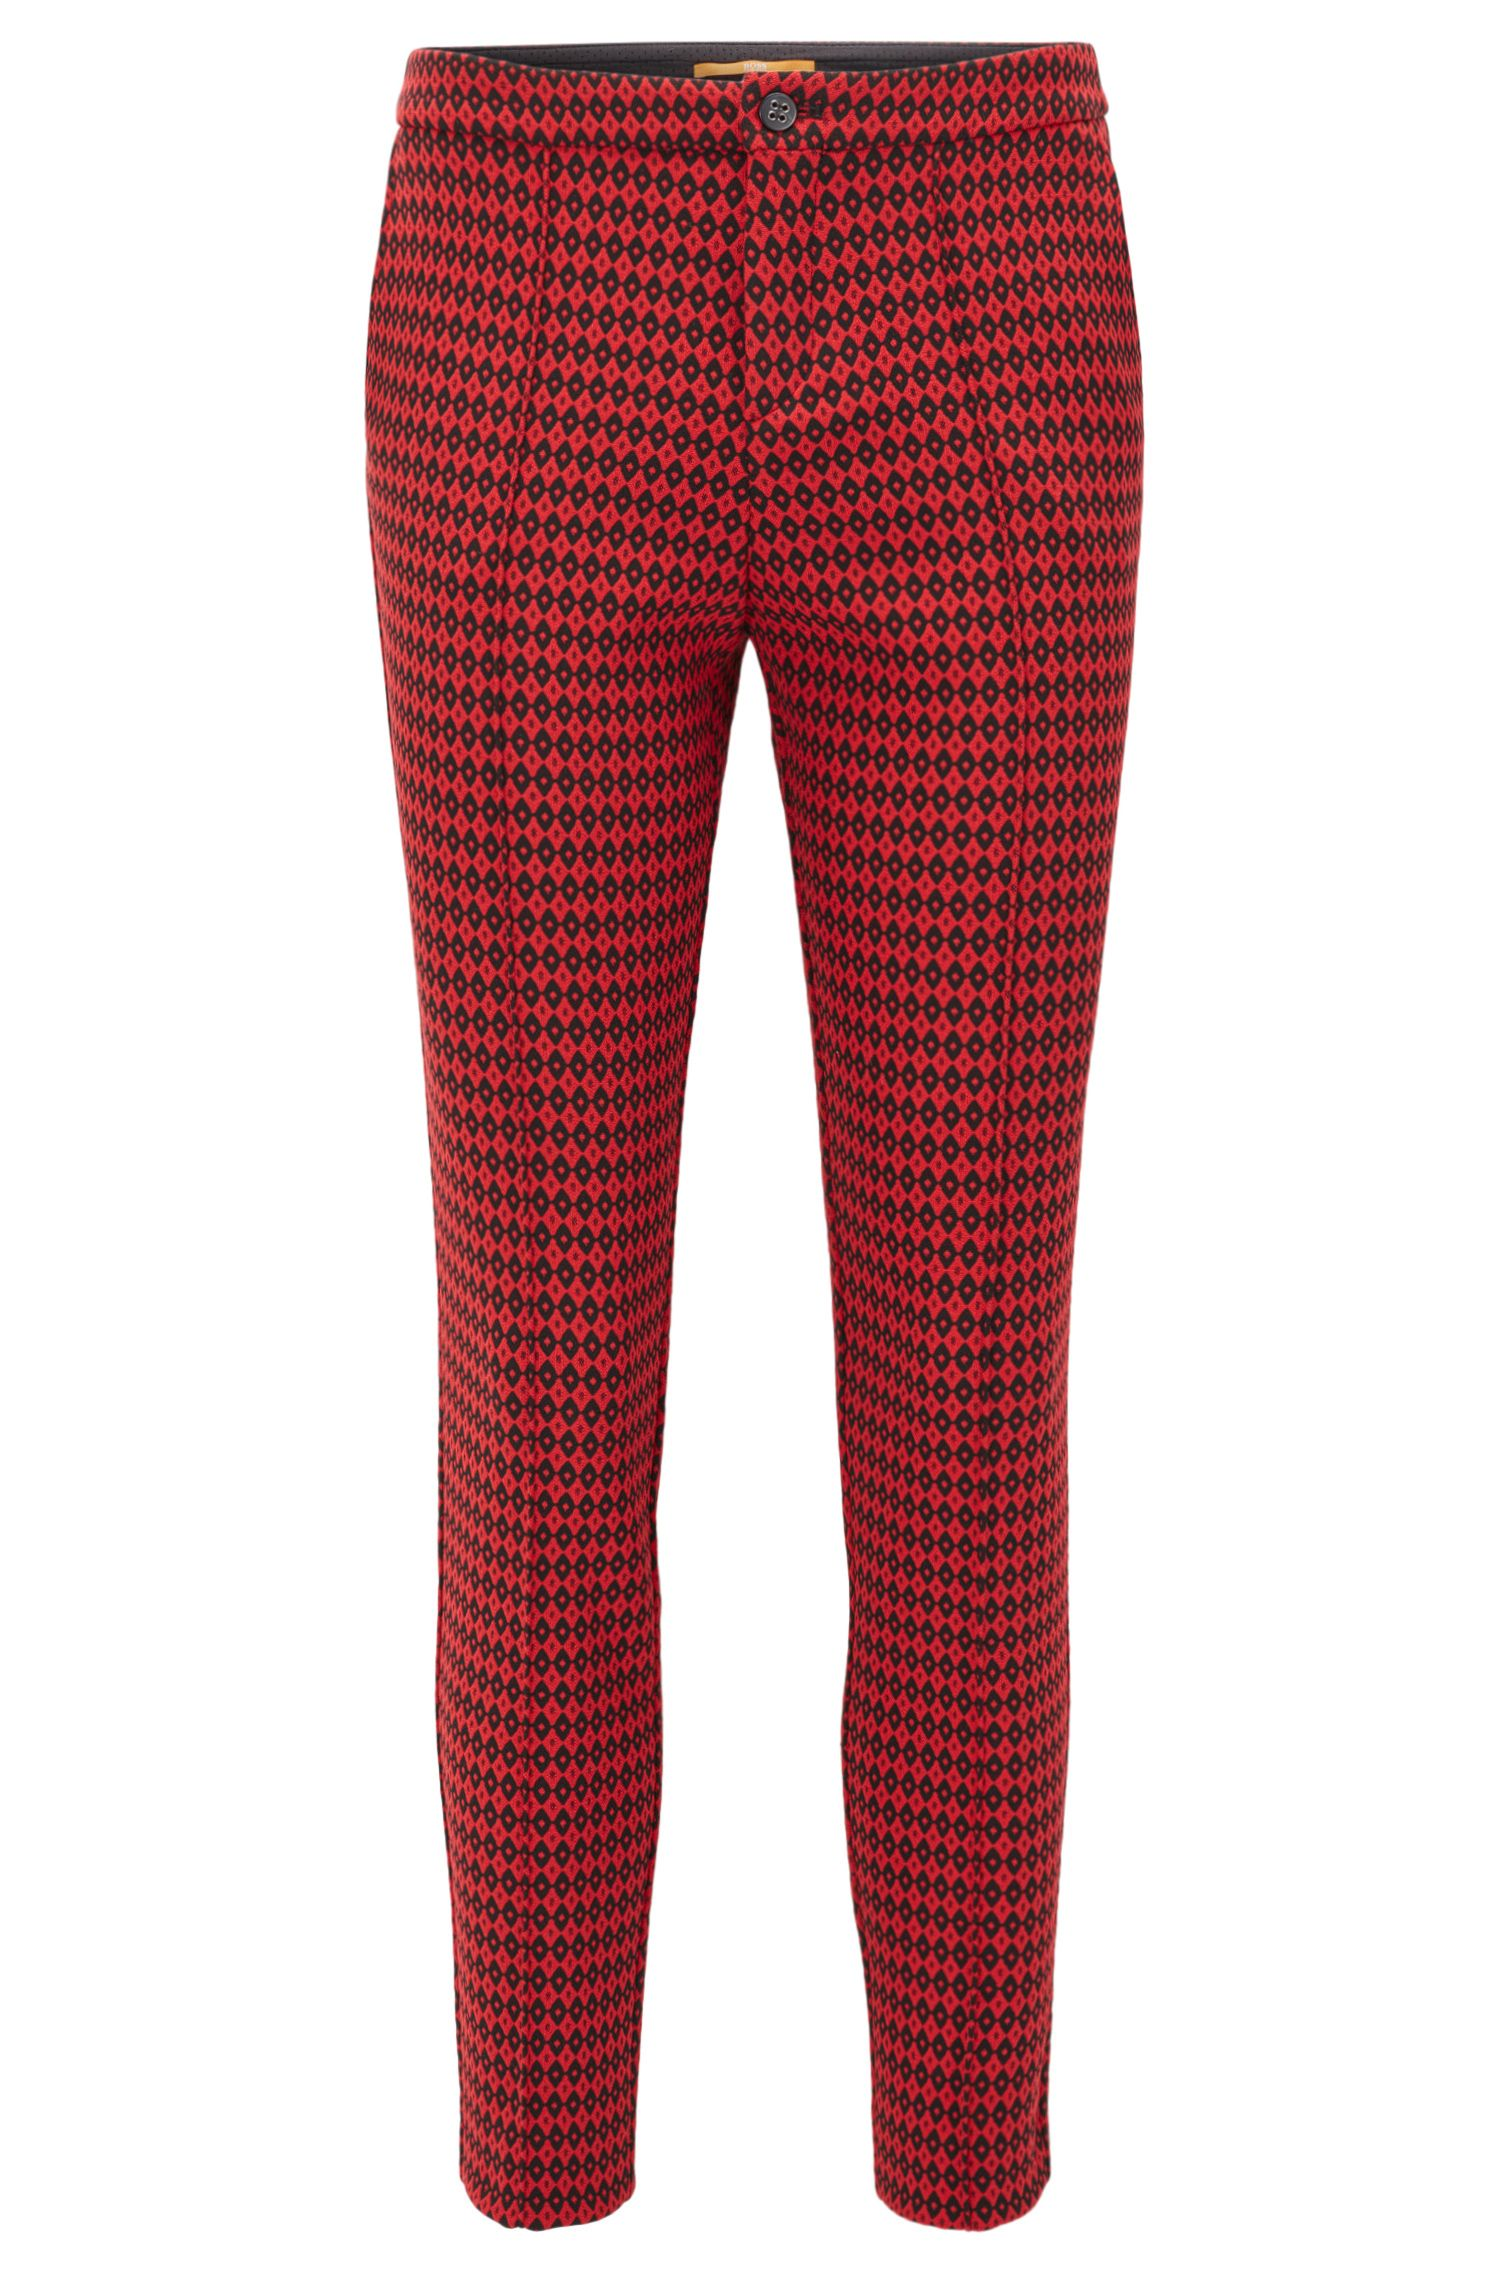 Pantalon Regular Fit en jacquard à motif